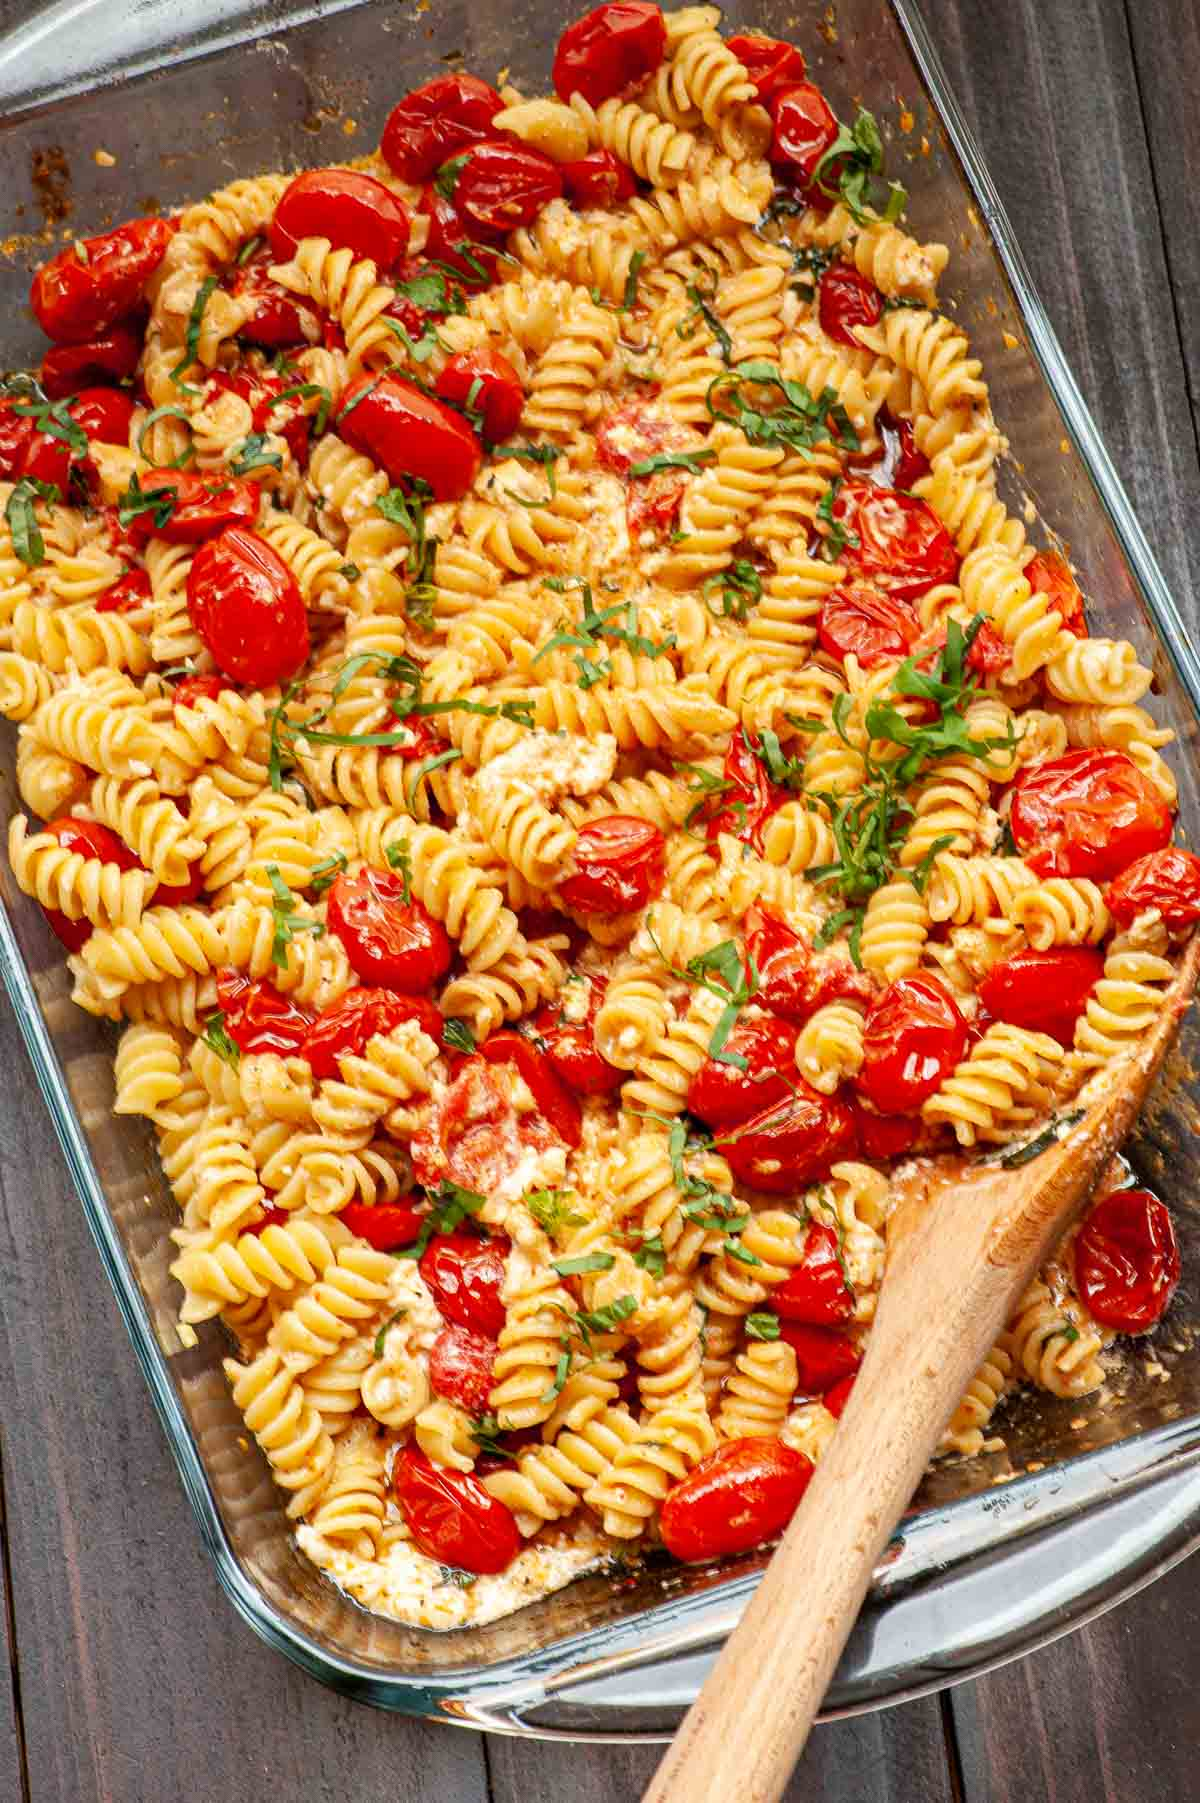 Feta pasta casserole with a wooden spoon for serving.